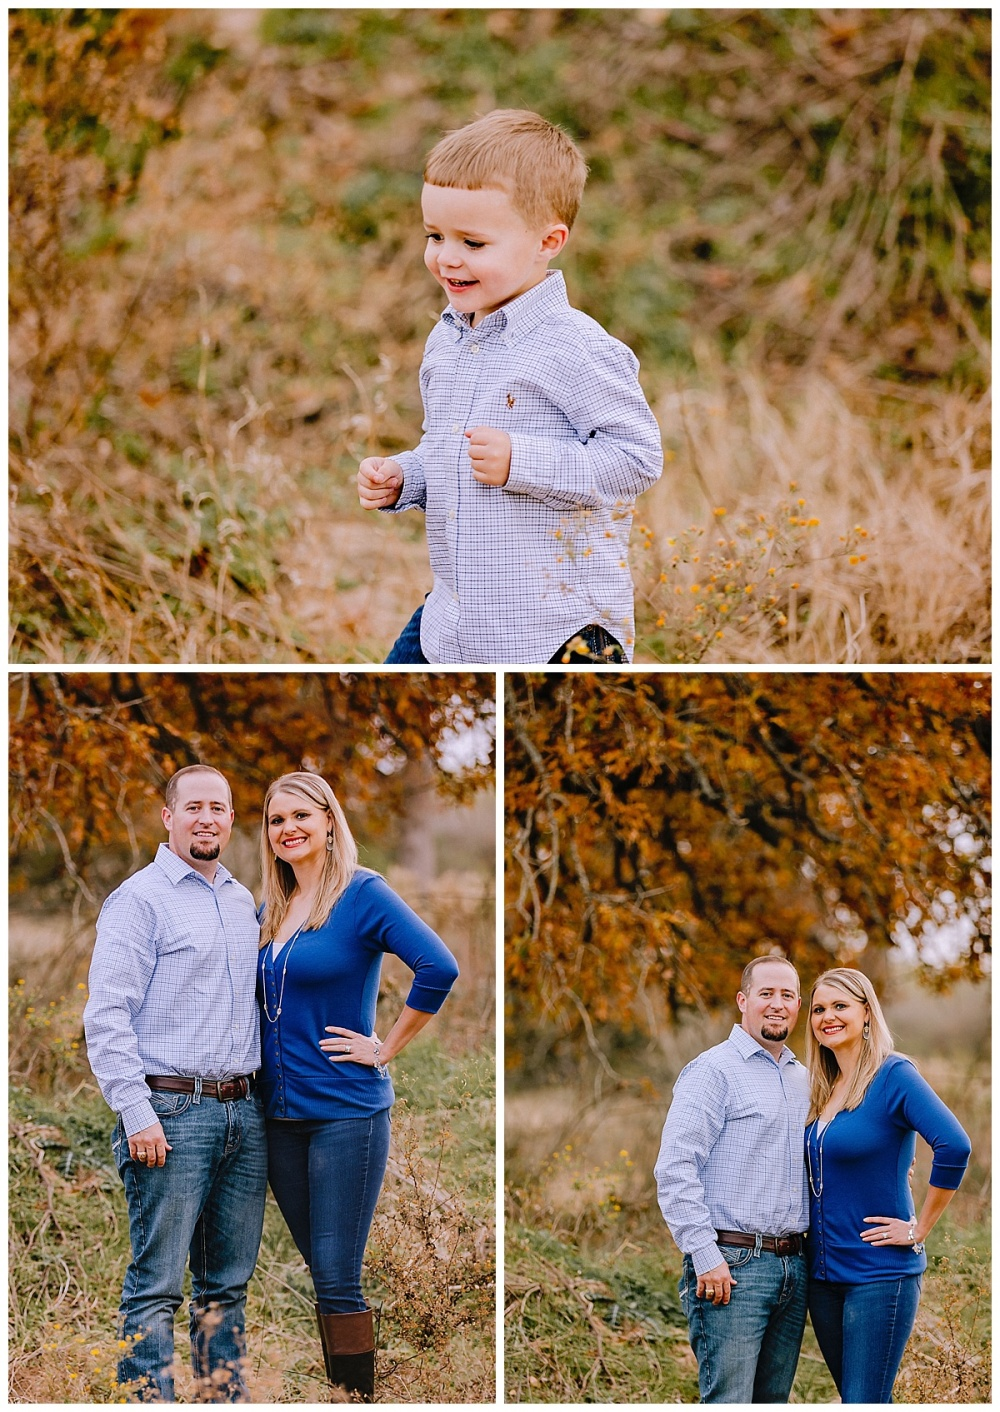 Family-Photographer-La-Vernia-Texas-LV-C-of-C-Hall-Fall-Photos-Brothers-Carly-Barton-Photography_0006.jpg